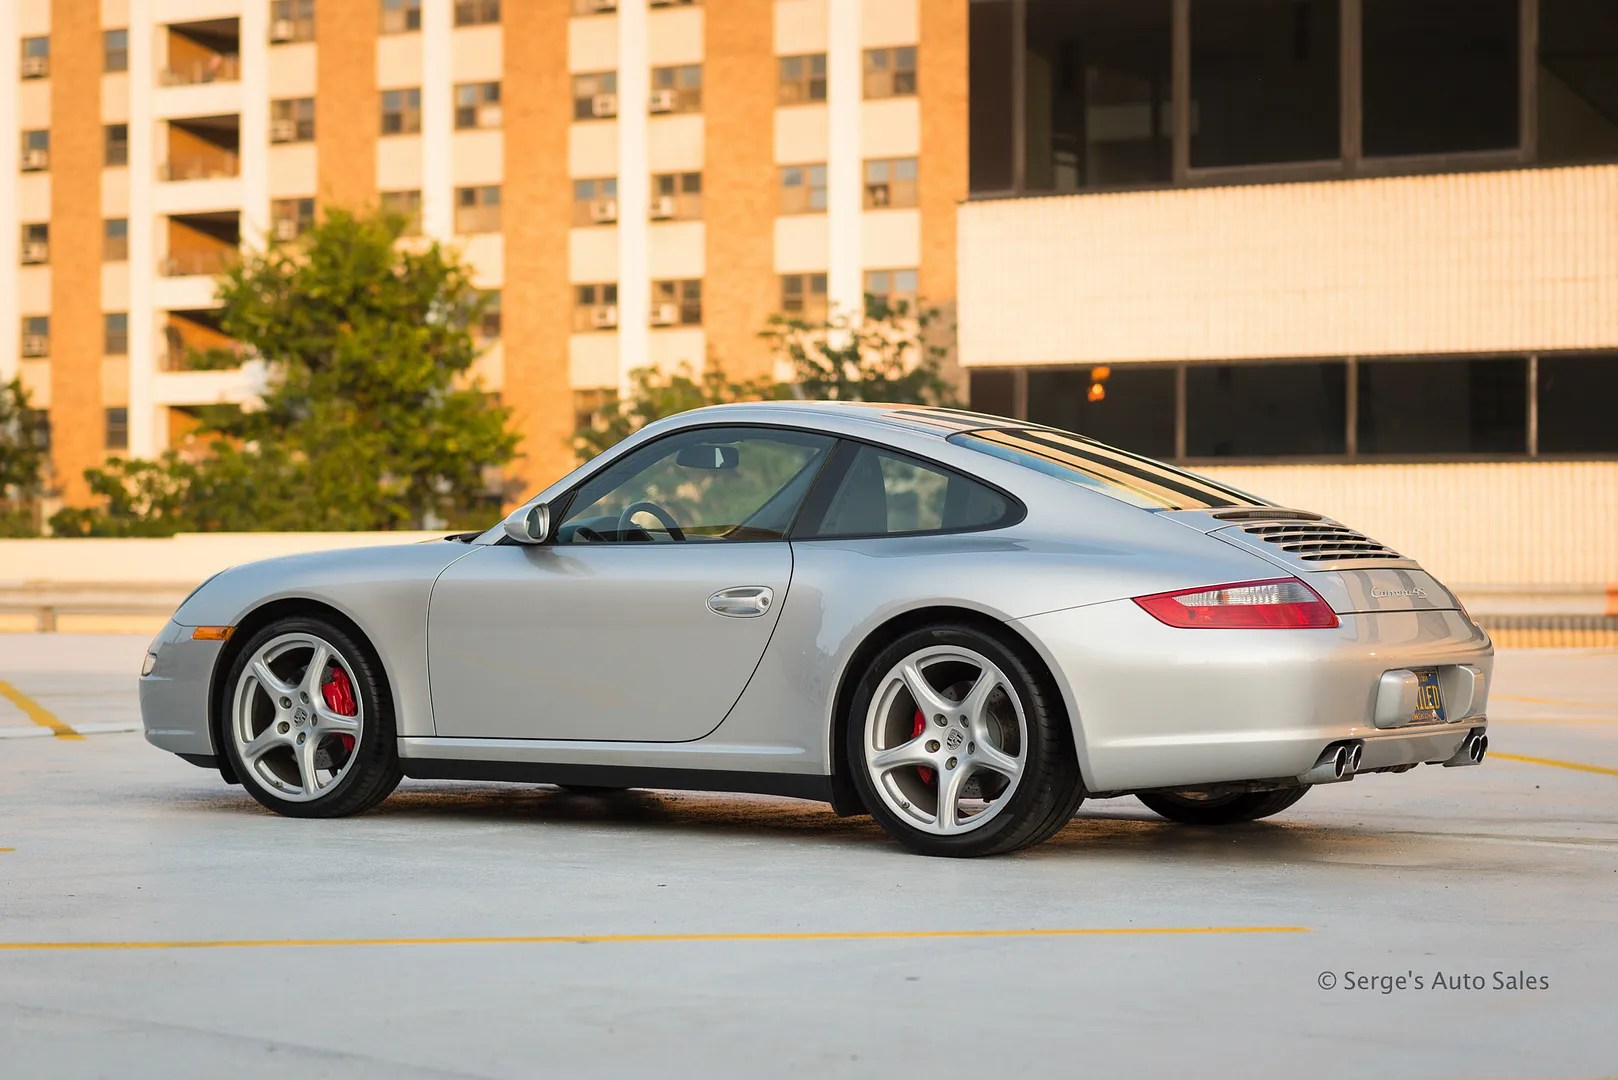 photo Serges-auto-sales-porsche-911-for-sale-scranton-pennsylvania-4_zpsokcz4zvh.jpg